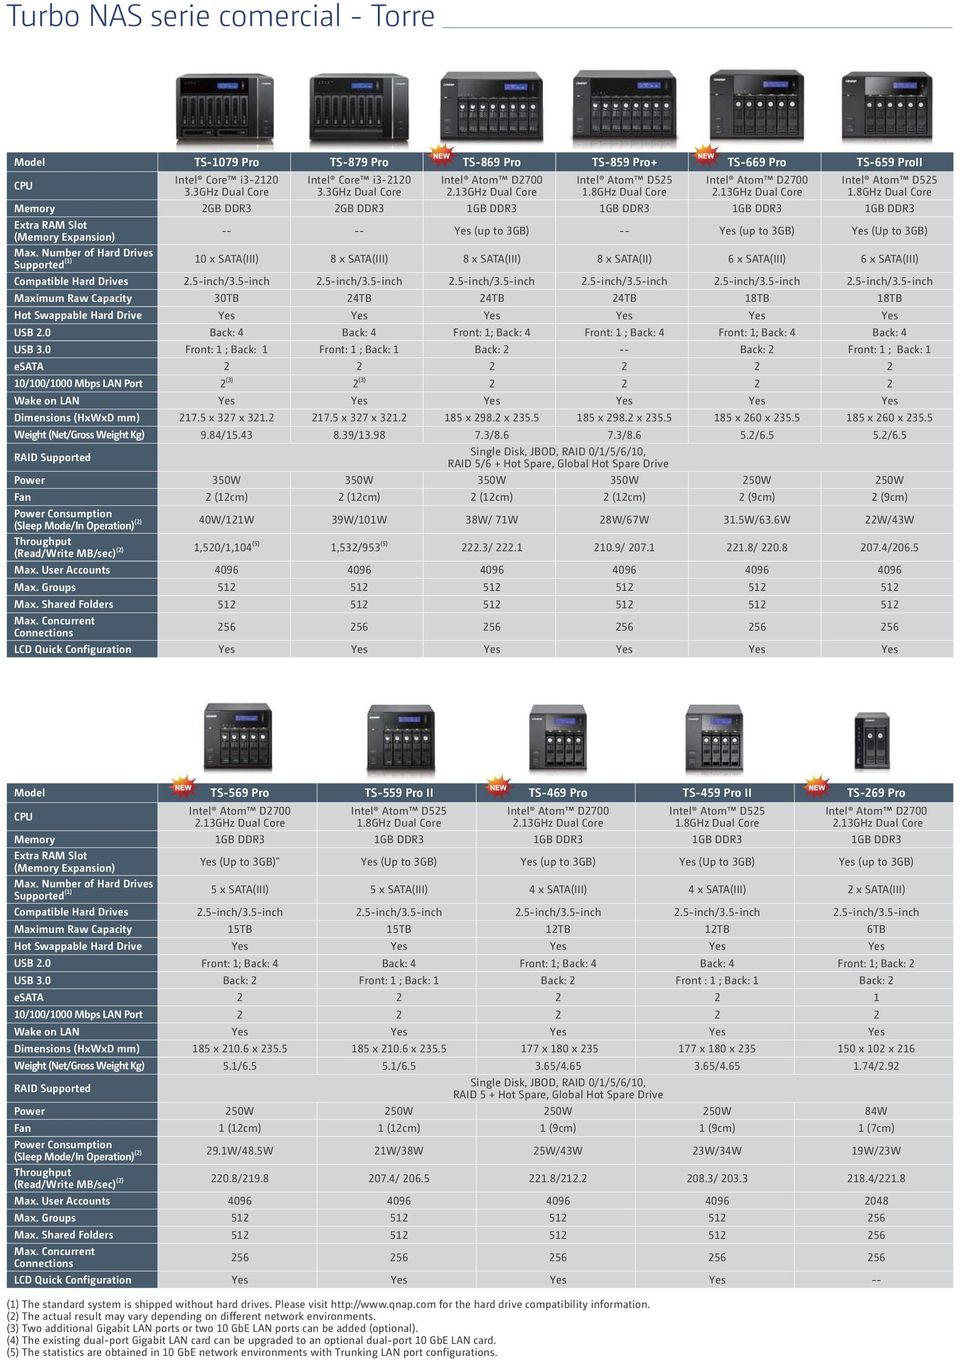 Number of Hard Drives (1) Supported 10 x SATA(III) 8 x SATA(III) 8 x SATA(III) 8 x SATA(II) 6 x SATA(III) 6 x SATA(III) Compatible Hard Drives 2.5-inch/3.